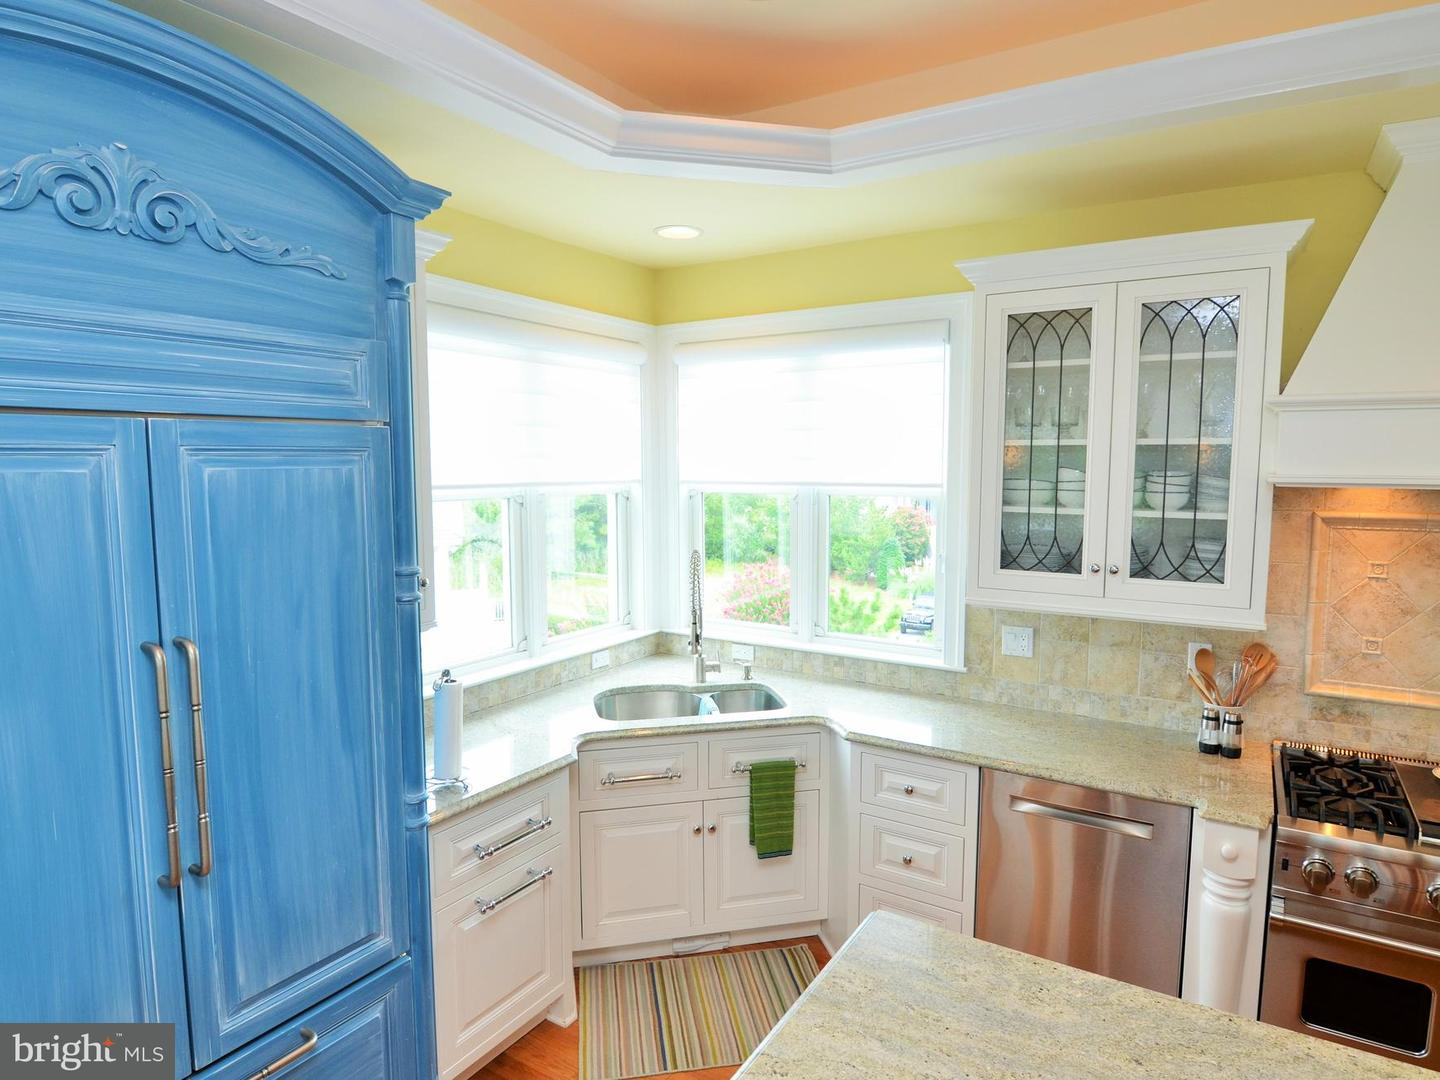 1002293530-300500808003-2018-09-25-15-08-25 31 Hall Ave | Rehoboth Beach, De Real Estate For Sale | MLS# 1002293530  - Suzanne Macnab